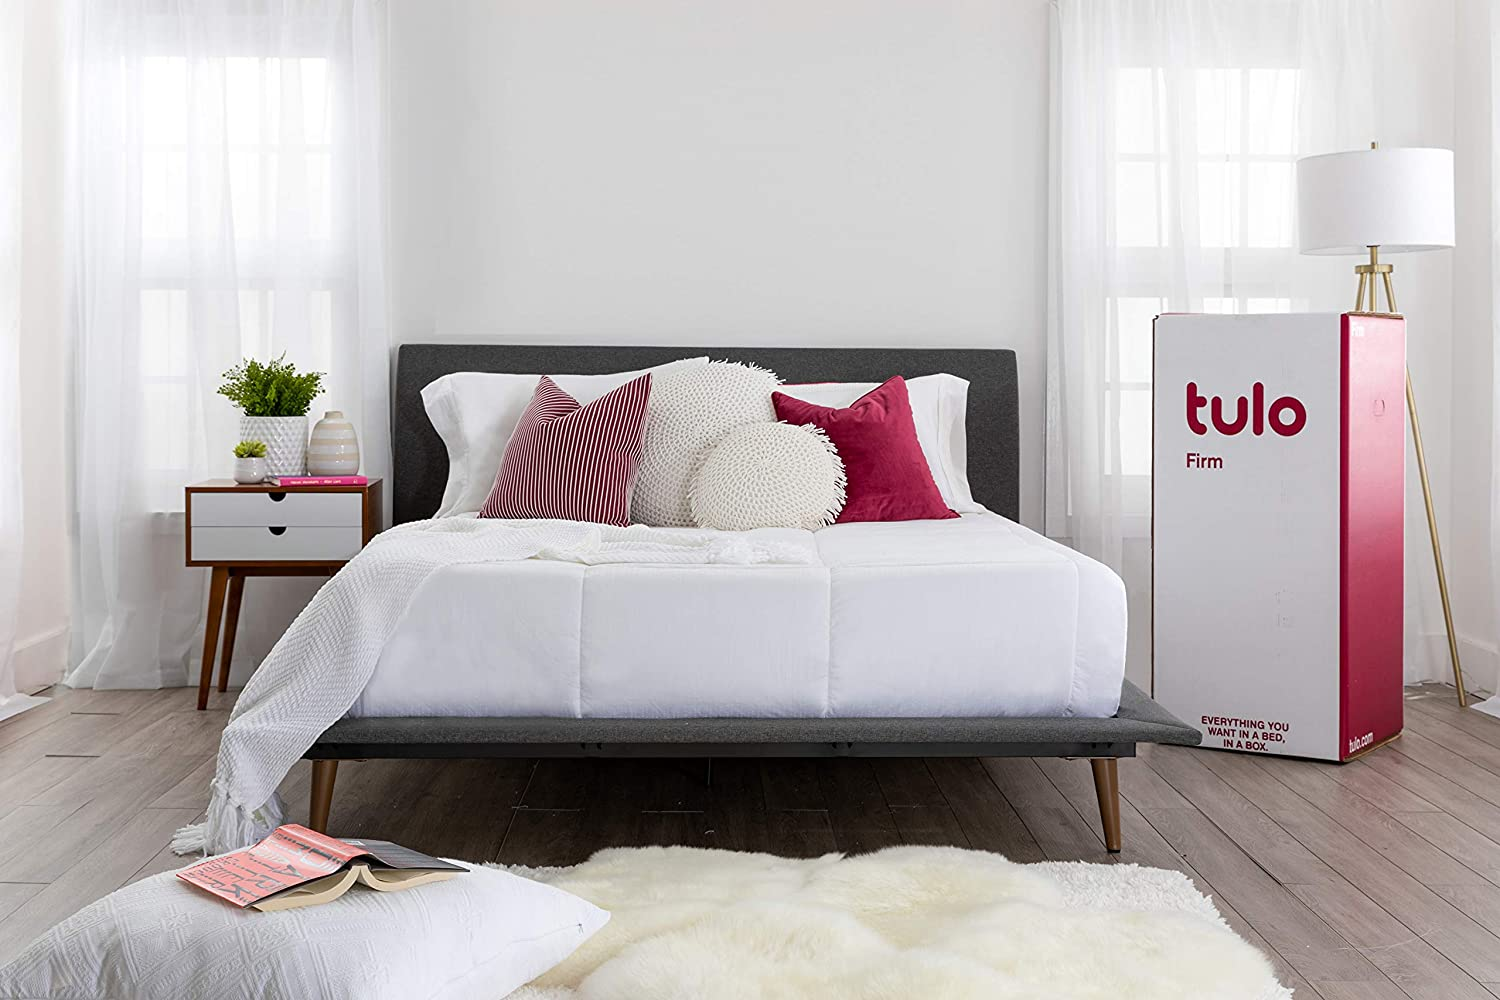 Mattress by tulo, Pick your Comfort Level, Firm King Size 10 inch, Bed in a Box